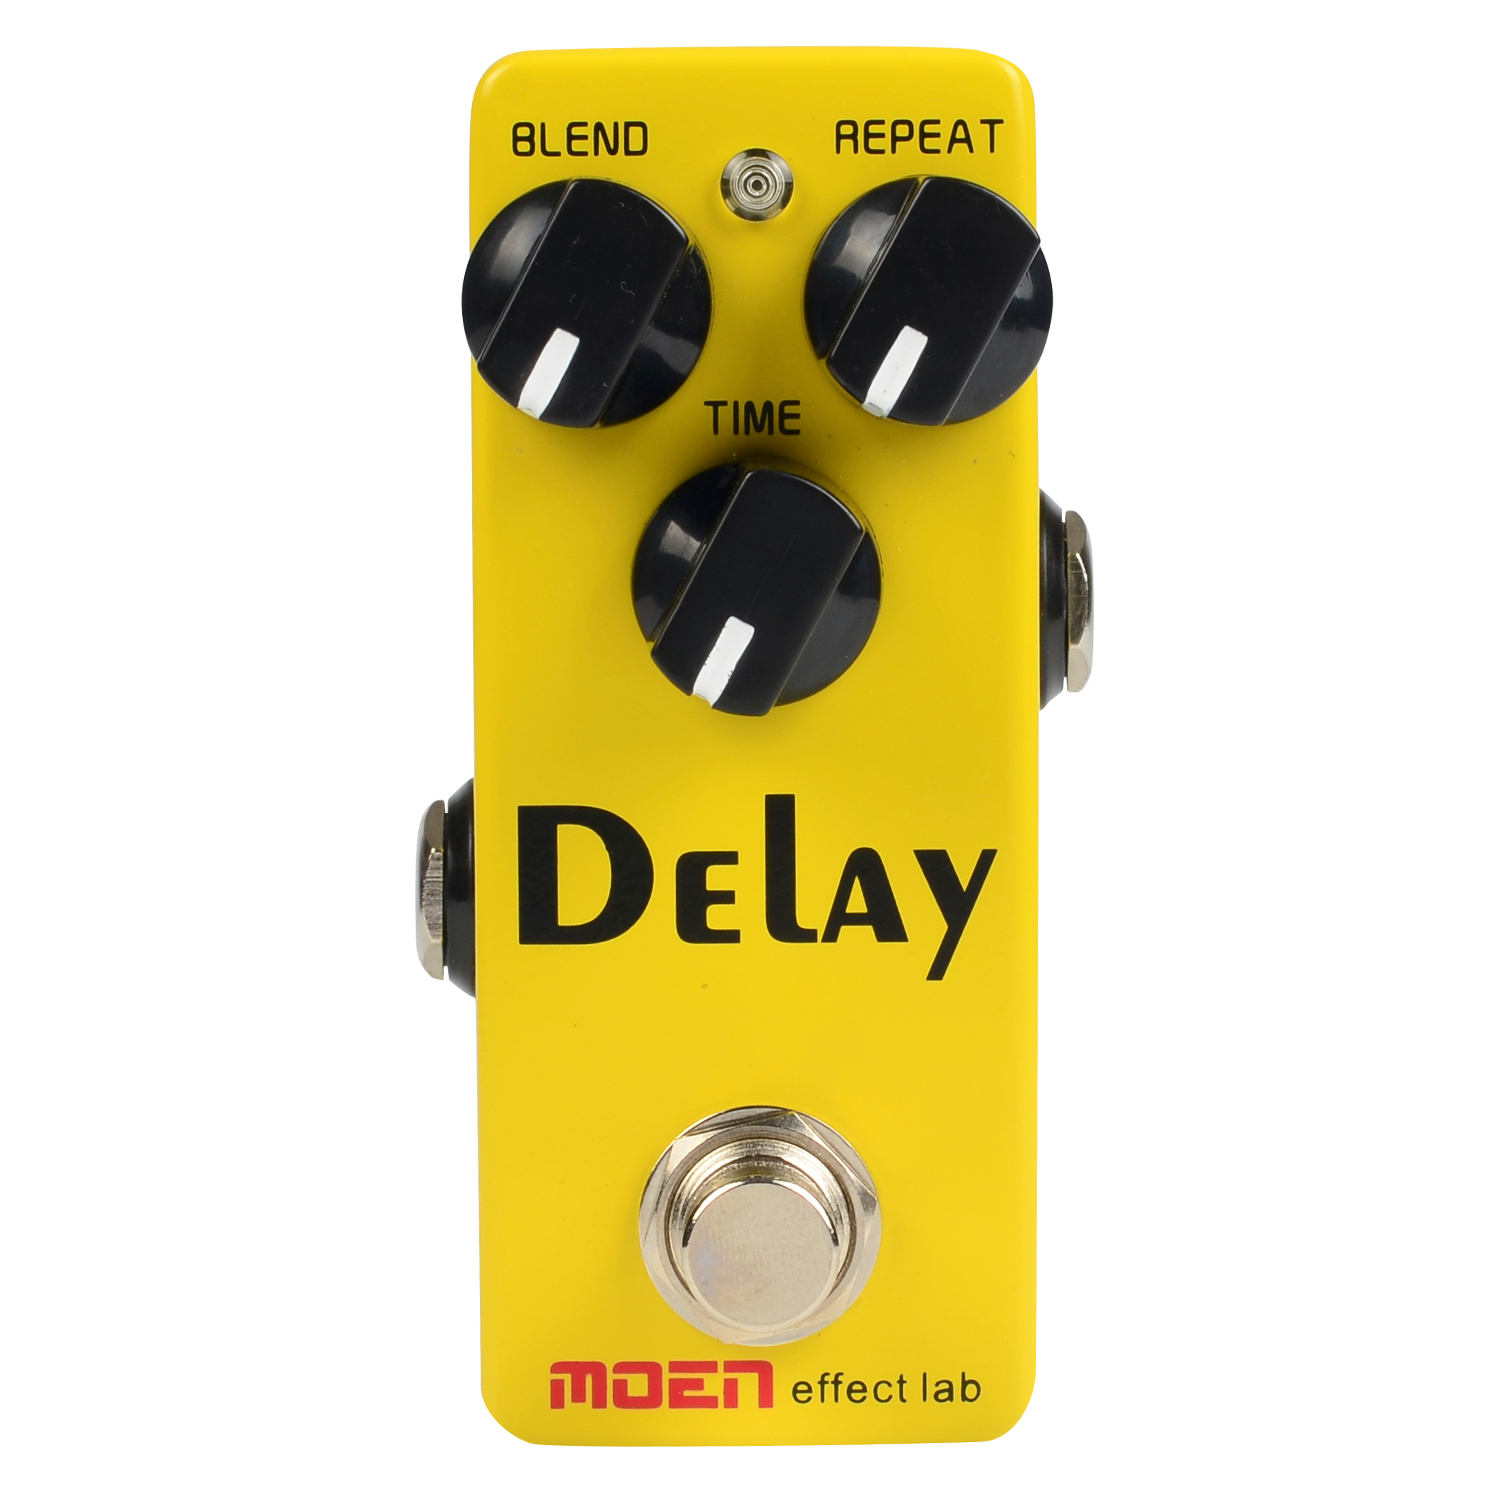 Moen Delay Guitar Effect Pedal Mini Effects Stompbox for Electric Guitar  Blend Time Repeat Control Ture Bypass moen compressor guitar effect pedal ture